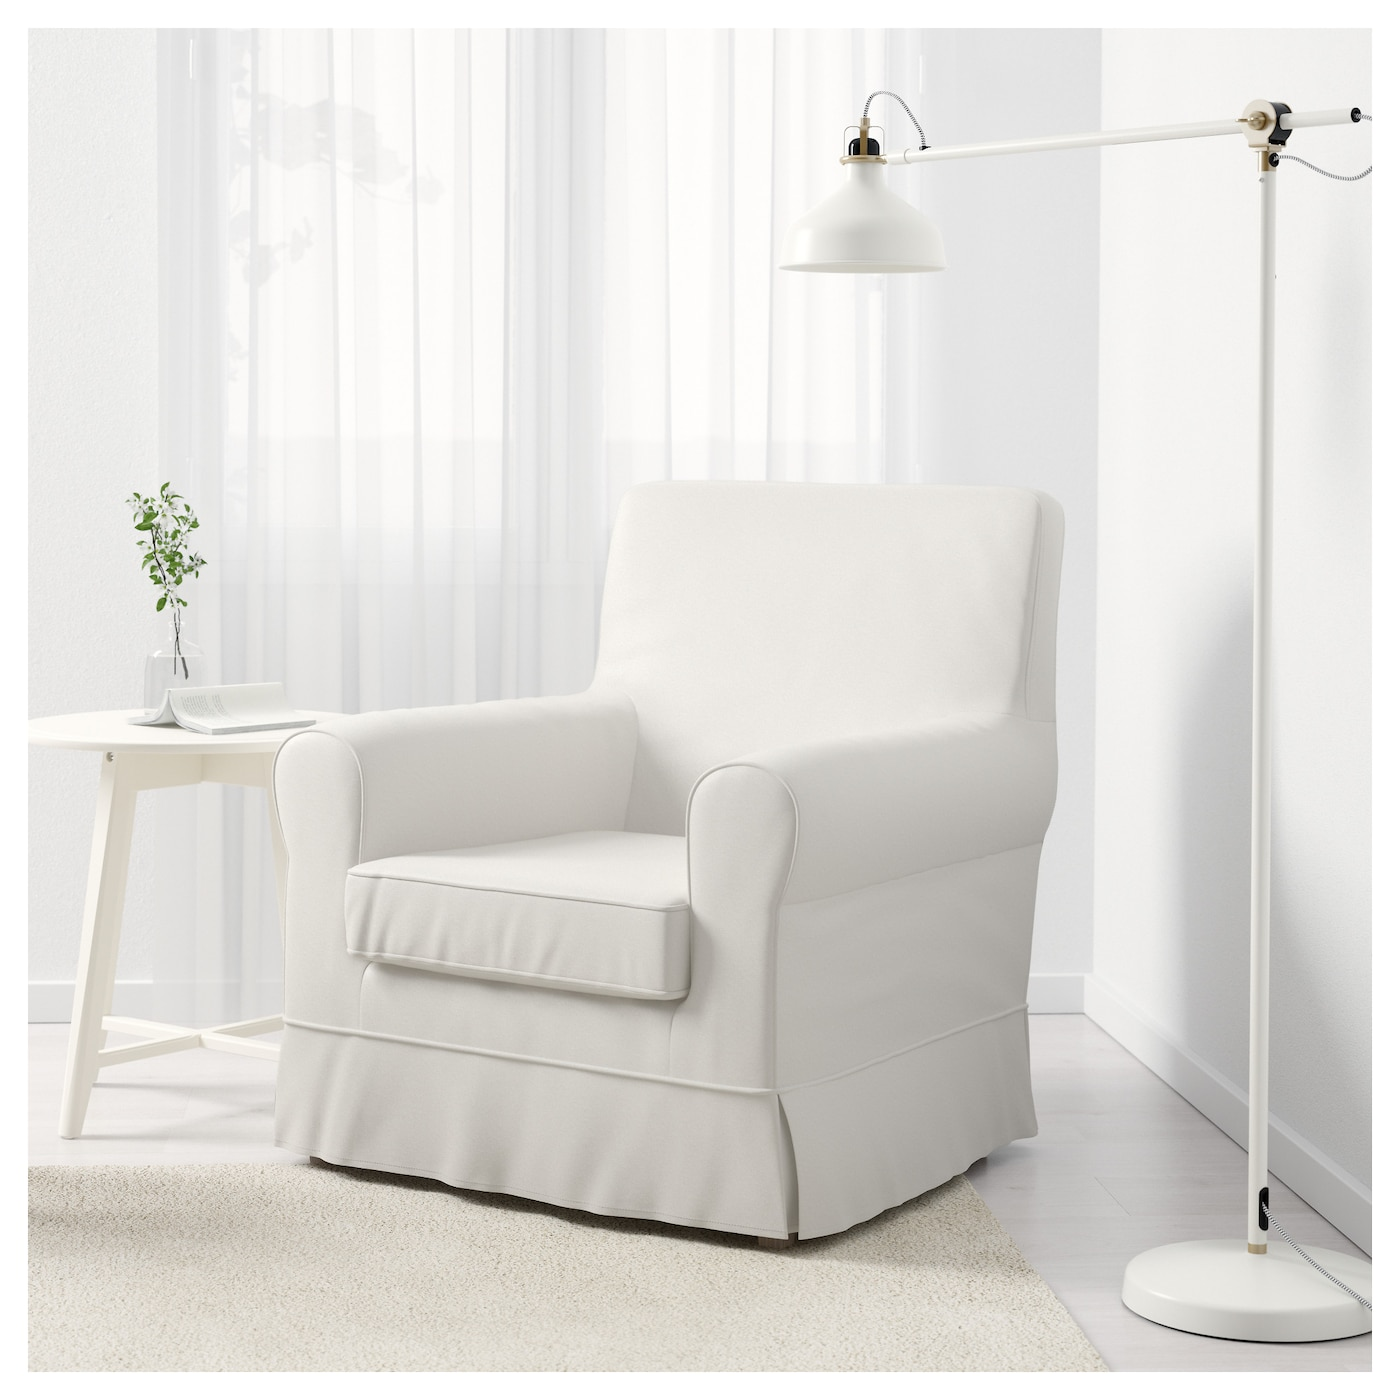 ikea small bedroom chairs jennylund armchair sten 229 sa white ikea 15618